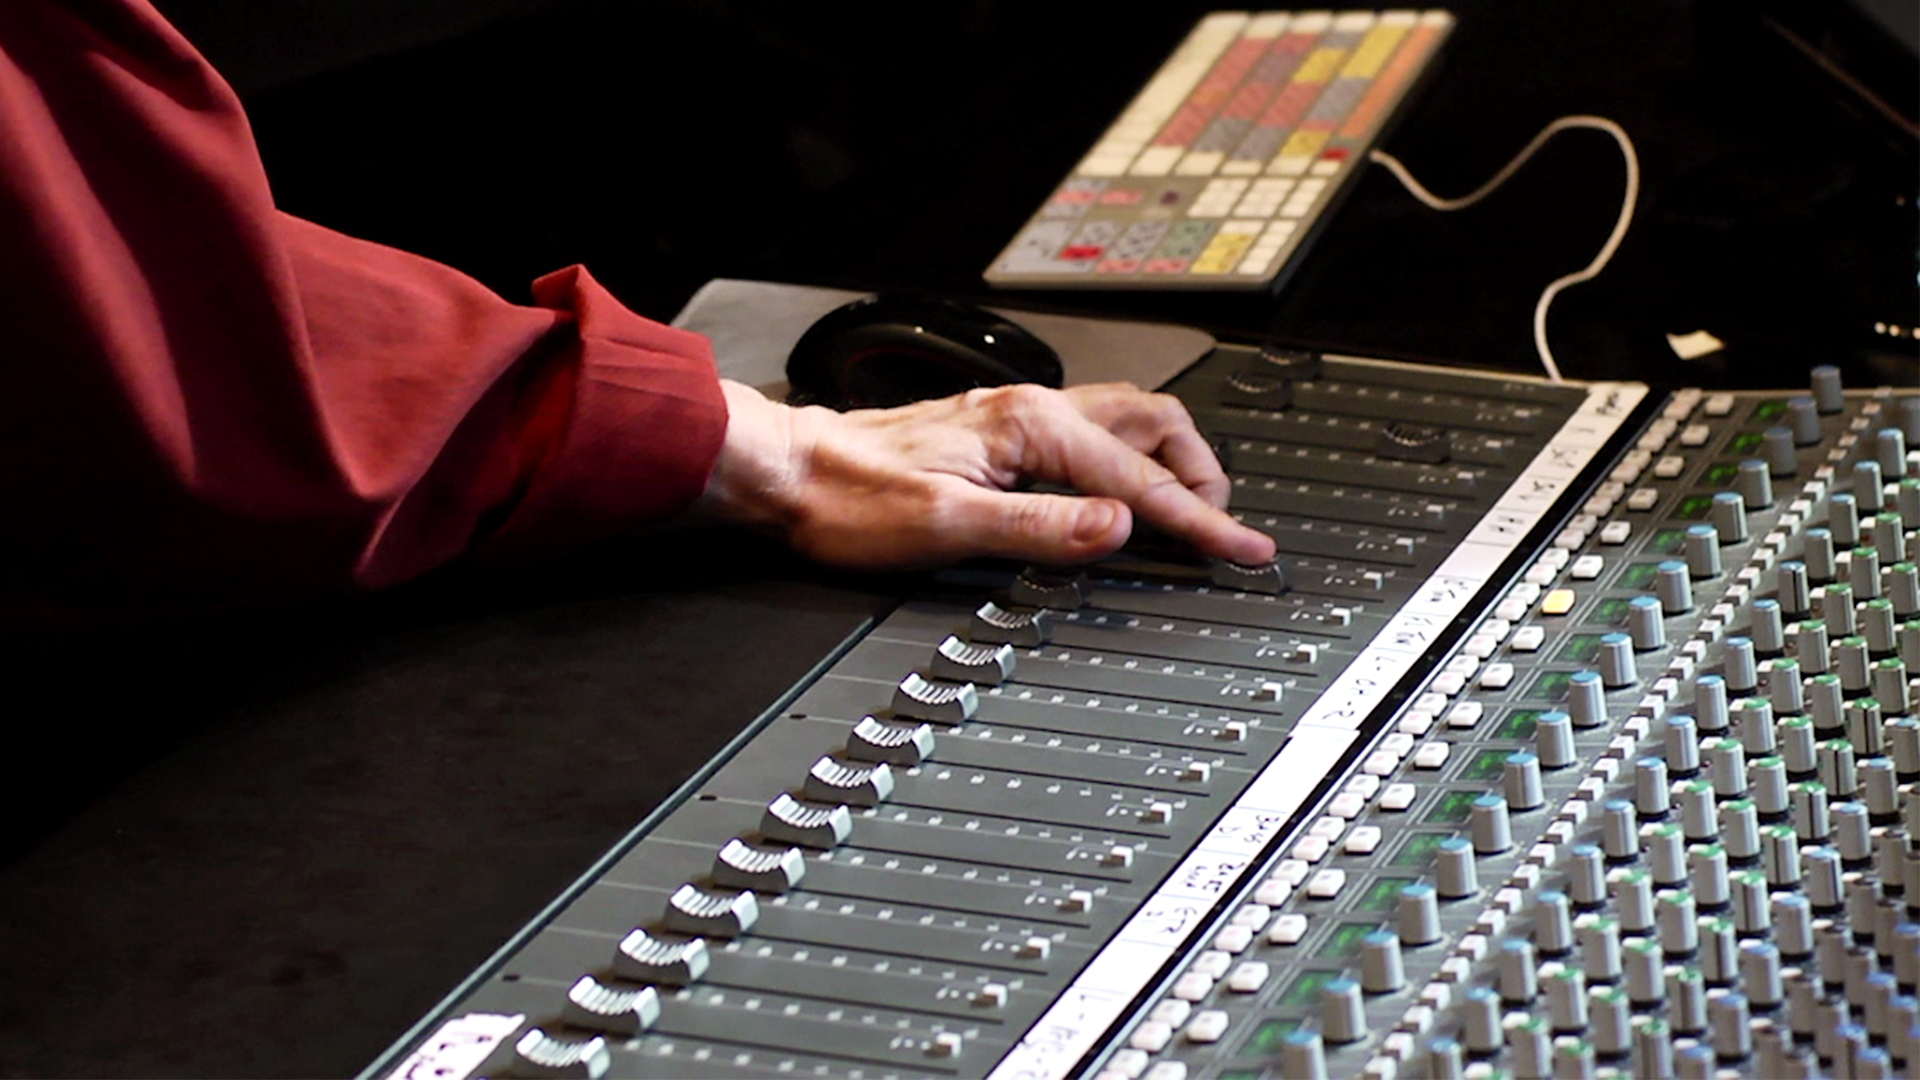 Deciding what role or roles you want to play: Understanding Audio and Music Production Careers